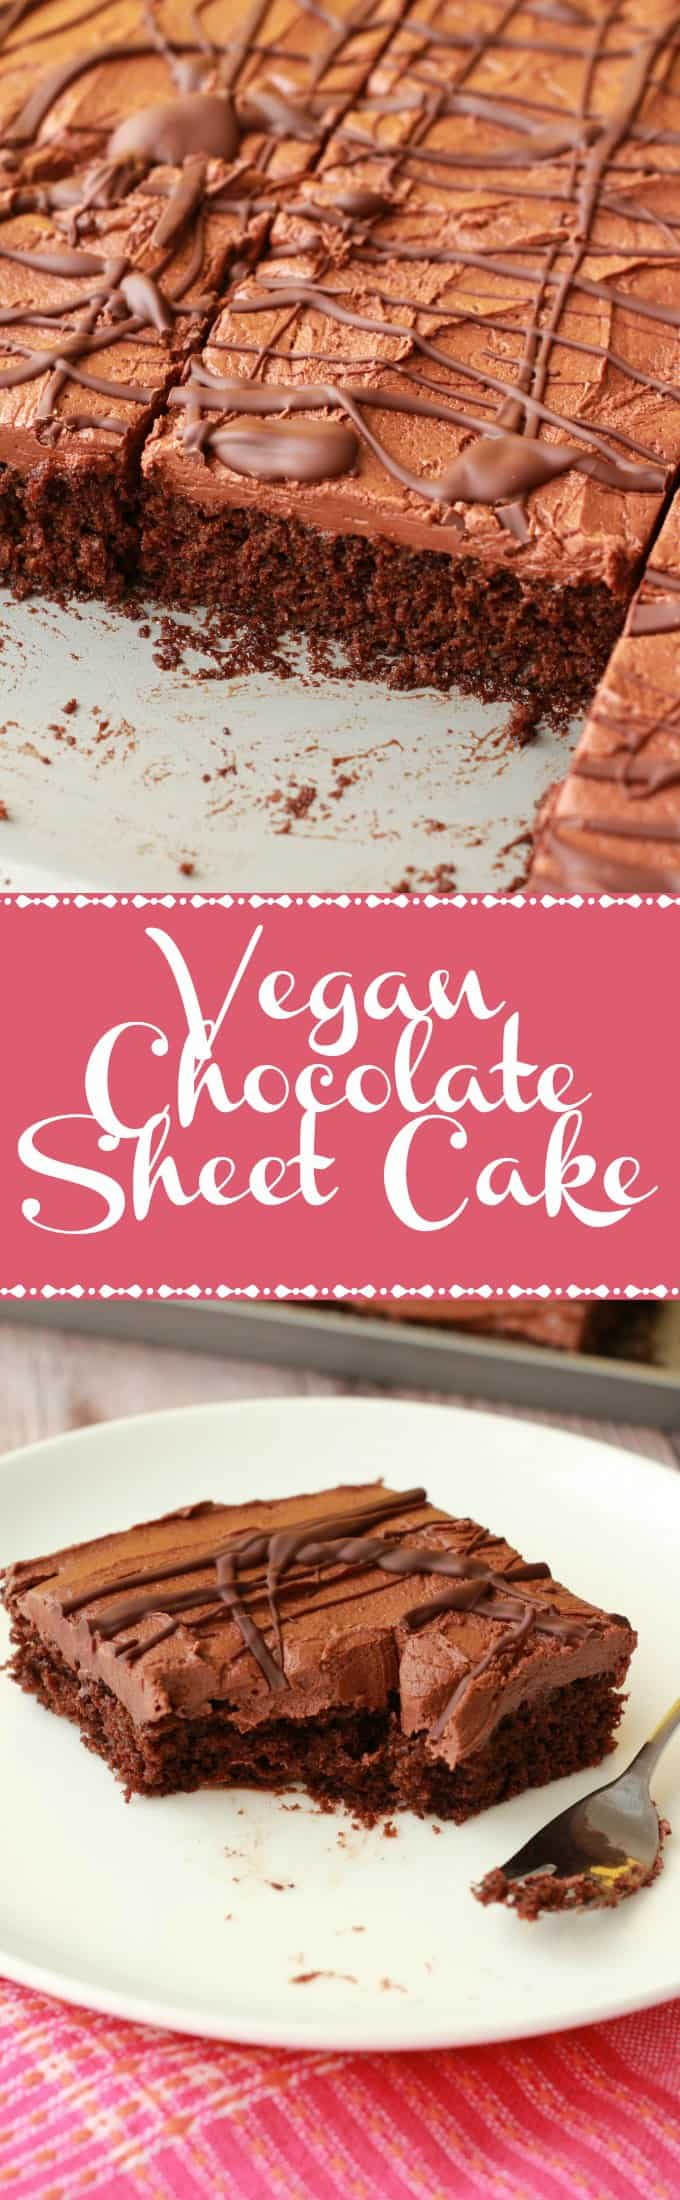 Chocolate Sheet Cake with Chocolate Fudge Frosting - Loving It Vegan